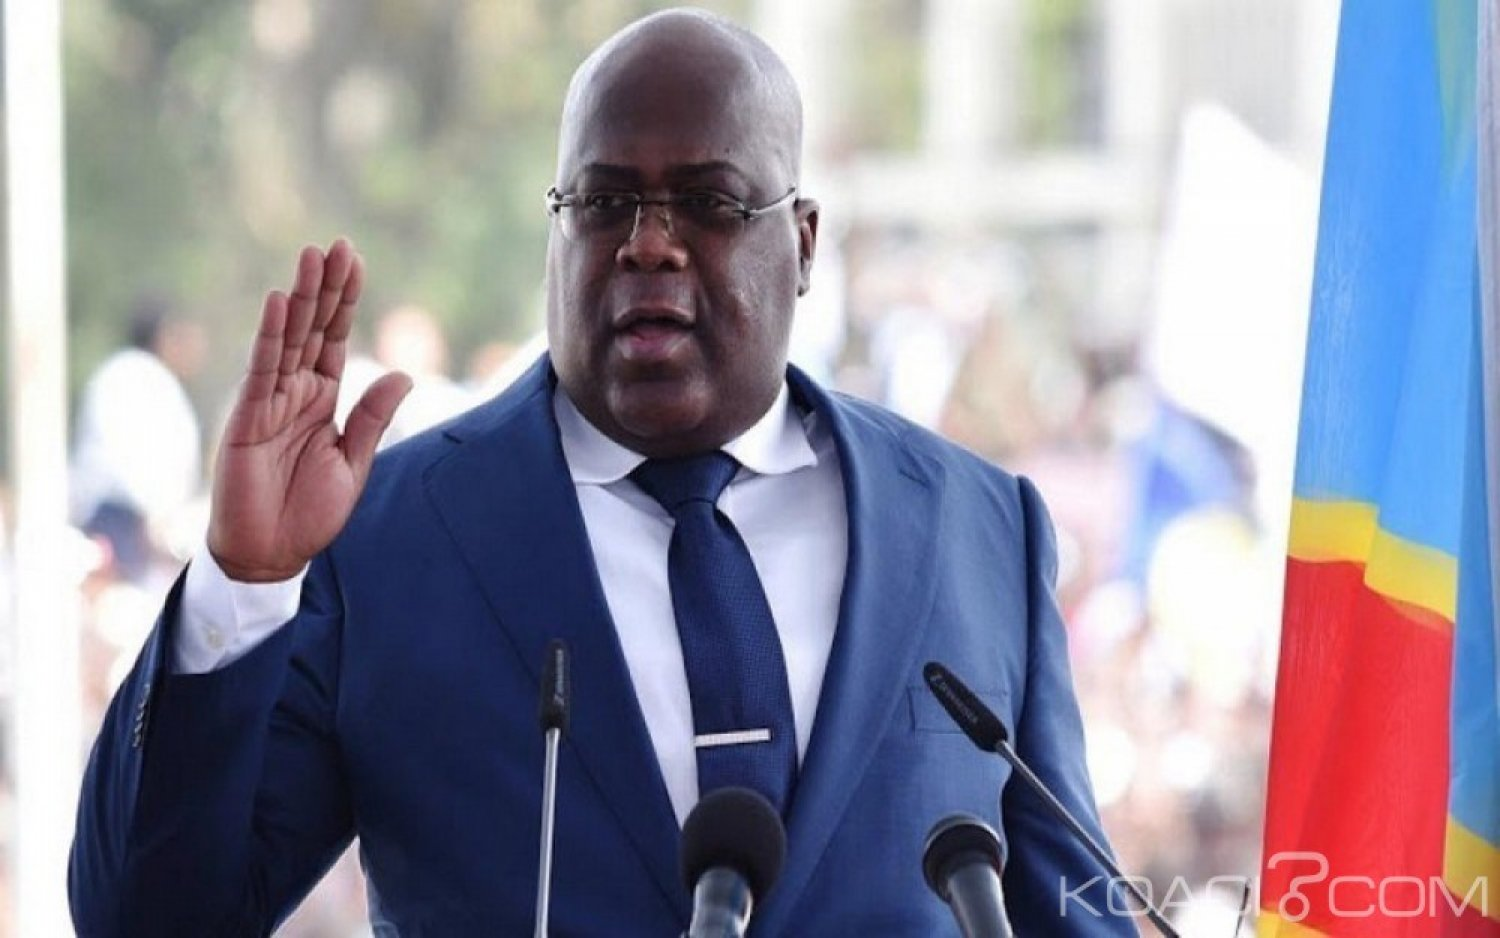 RDC : Suspension de l'installation de sénateurs,  un journaliste porte plainte contre  Tshisekedi